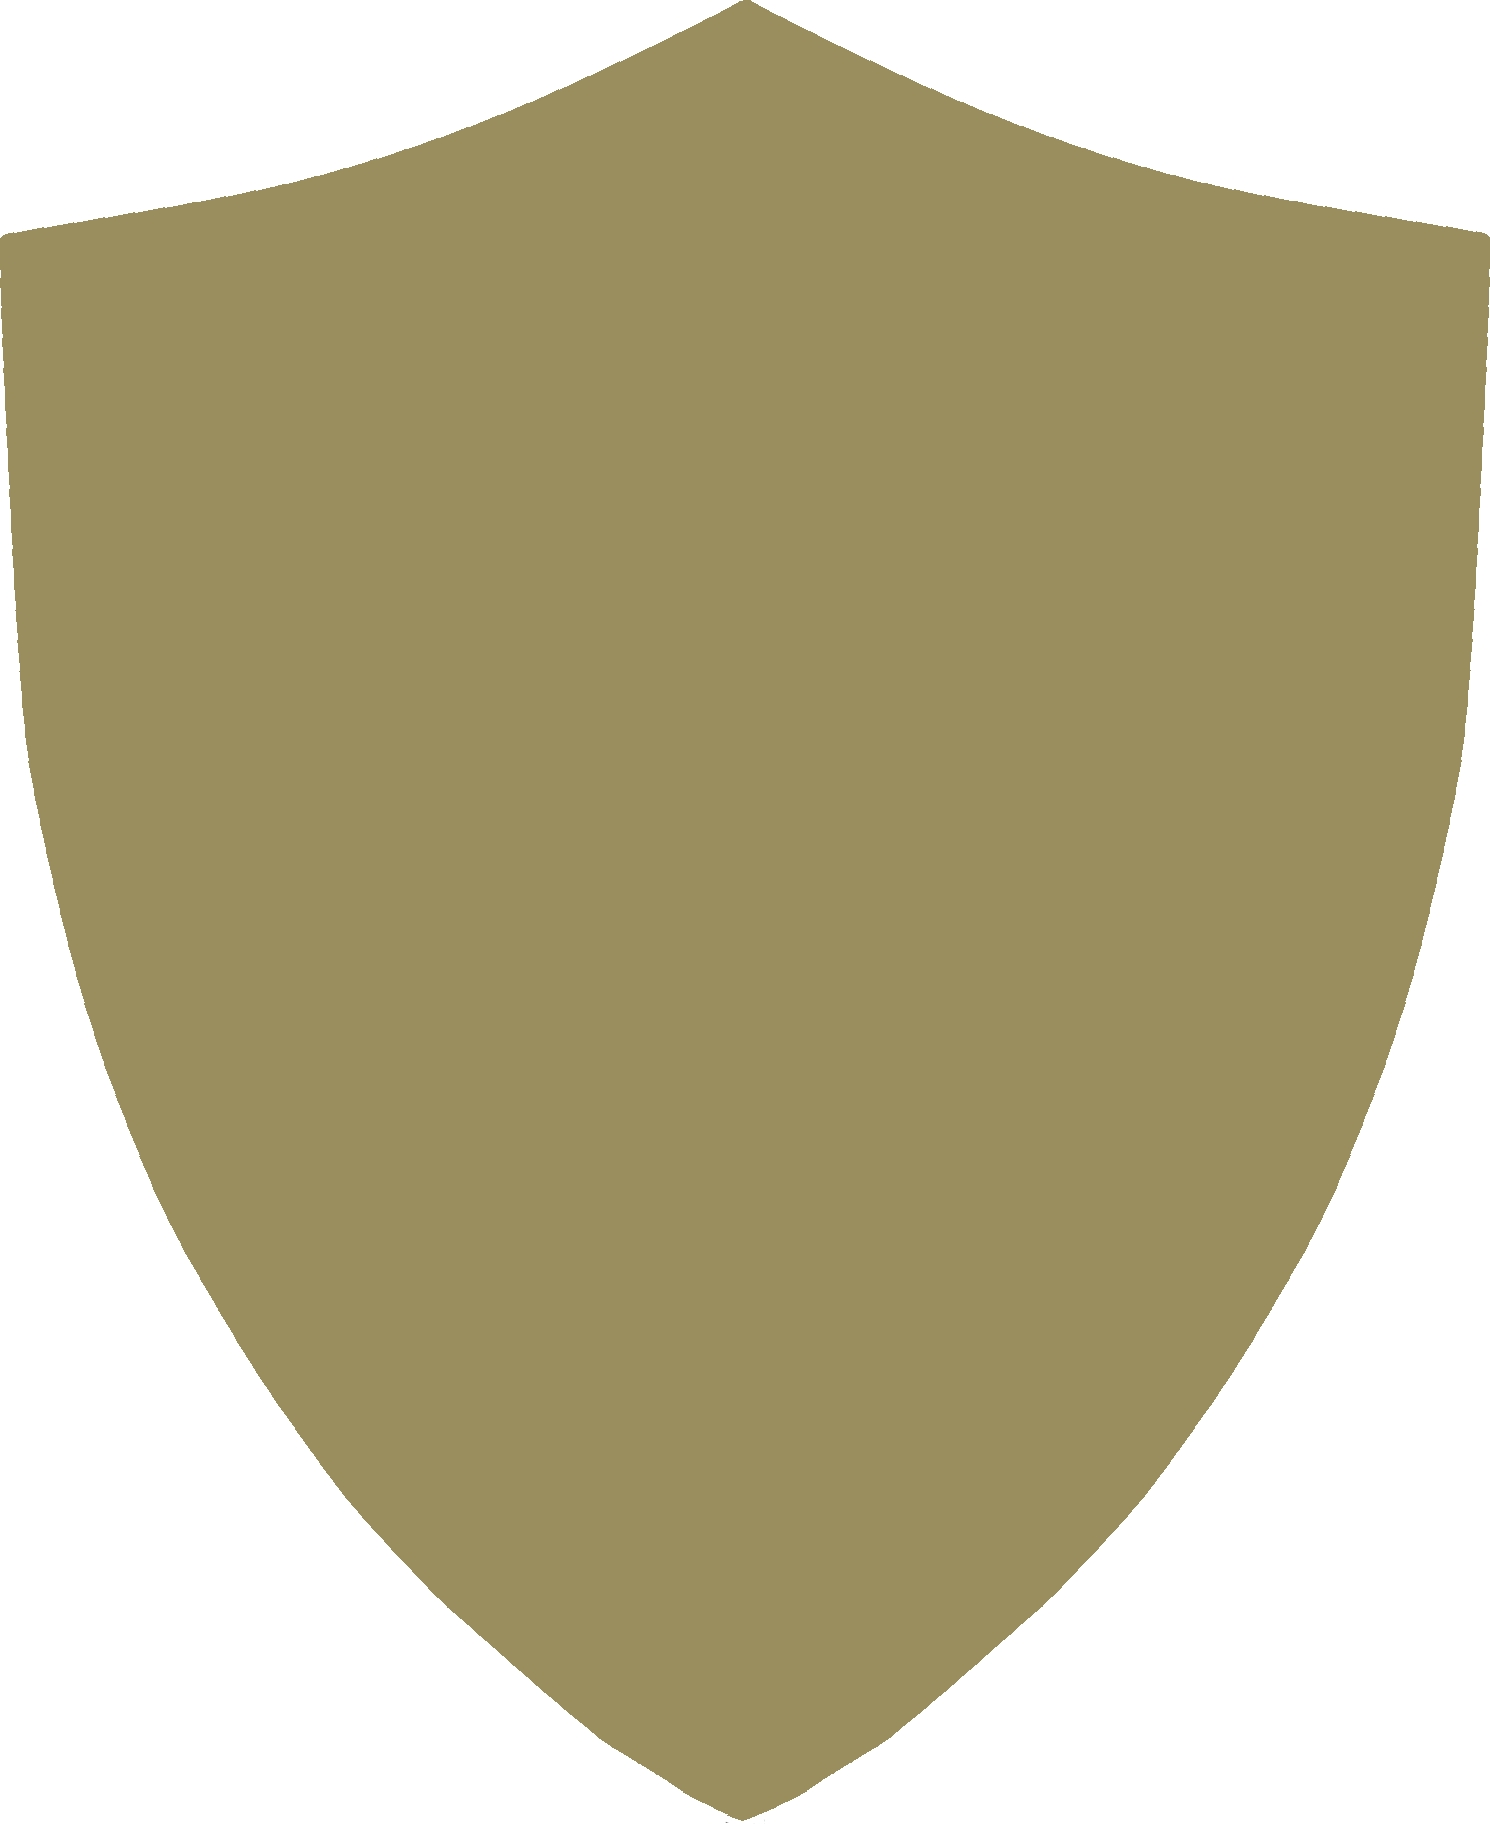 Shield background mirror gold free images at clker vector shield background pronofoot35fo Image collections